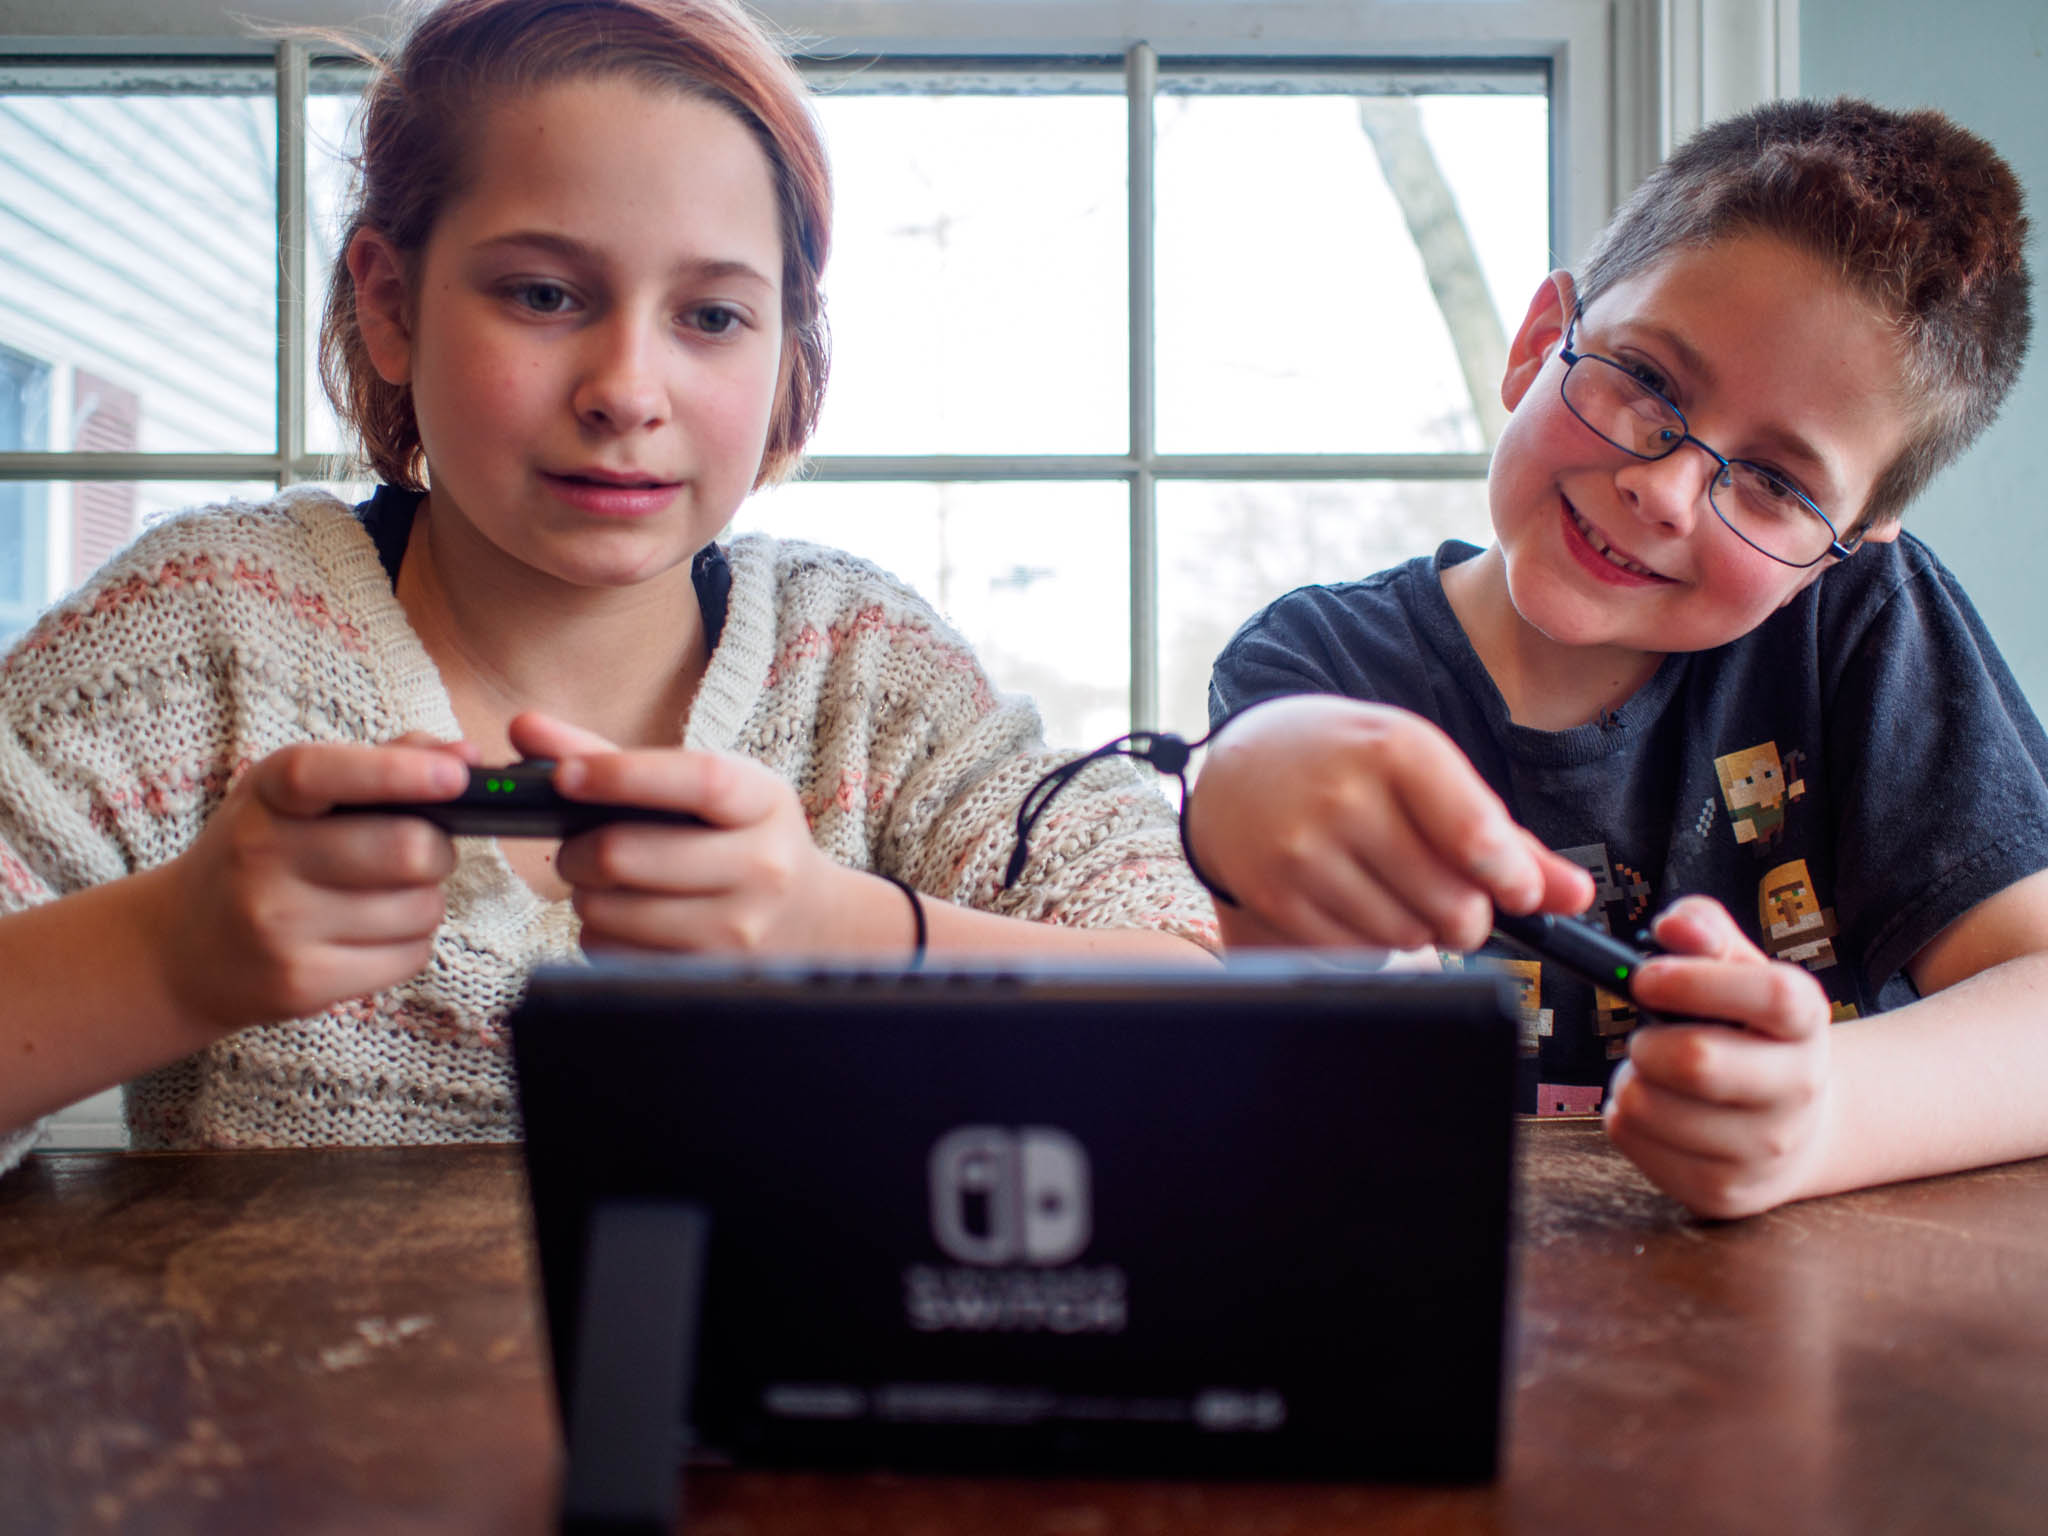 Eggcellent Family Games To Play On Your Nintendo Switch